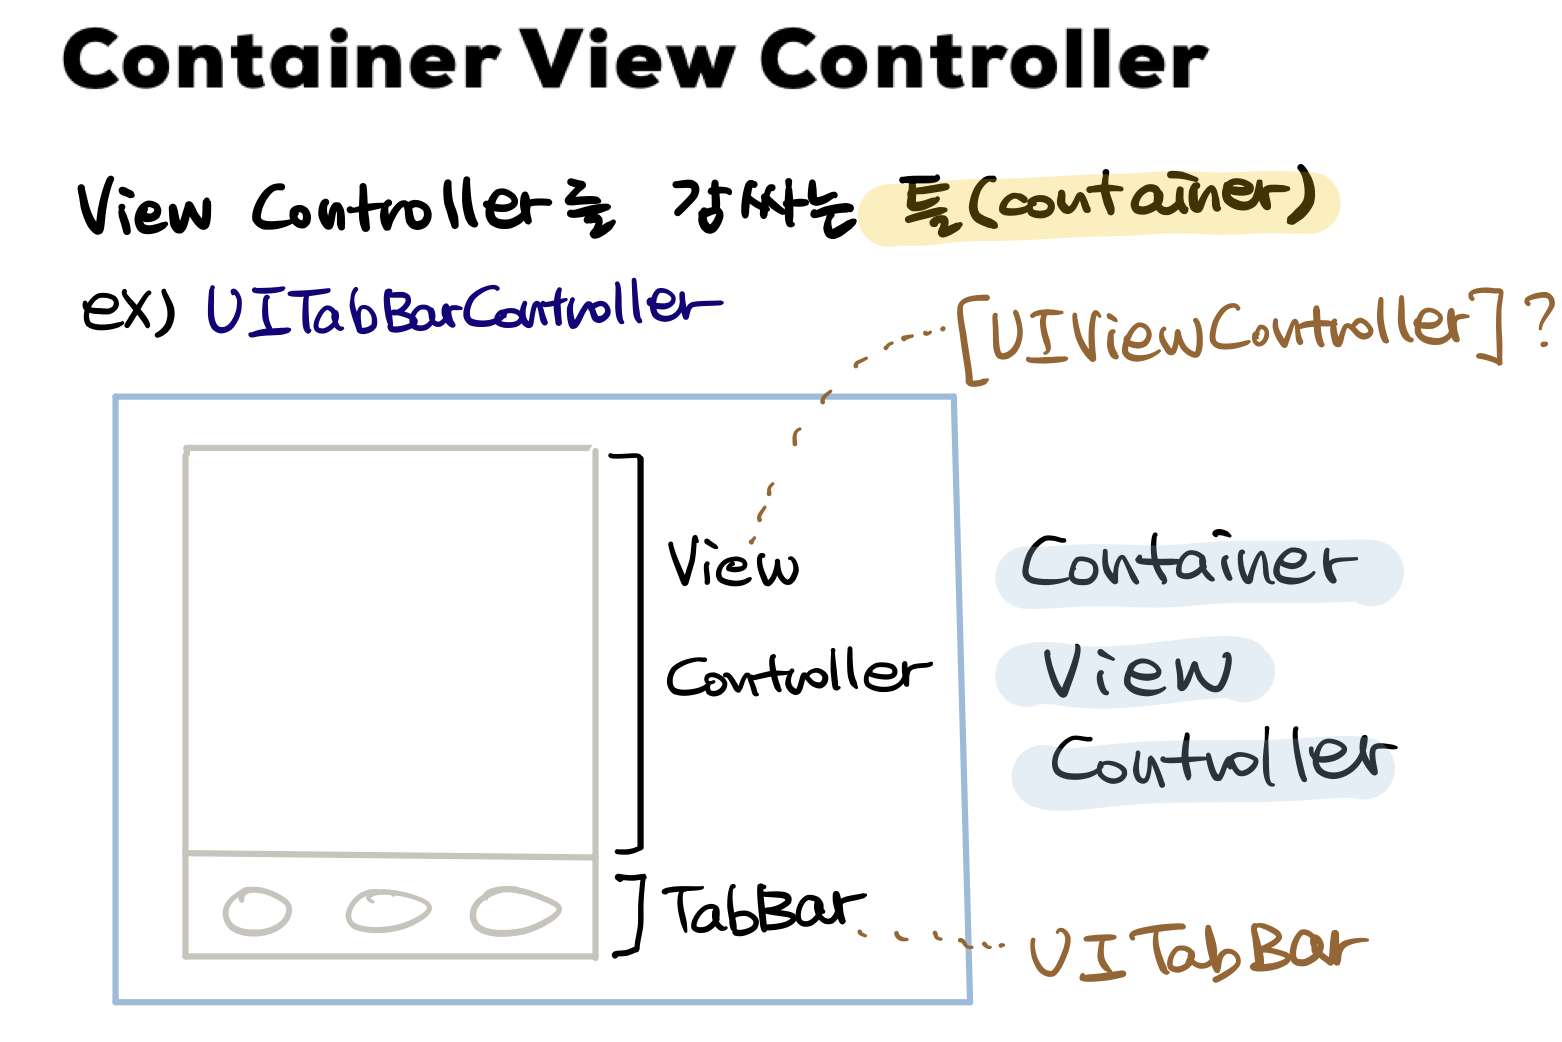 container view controller diagram